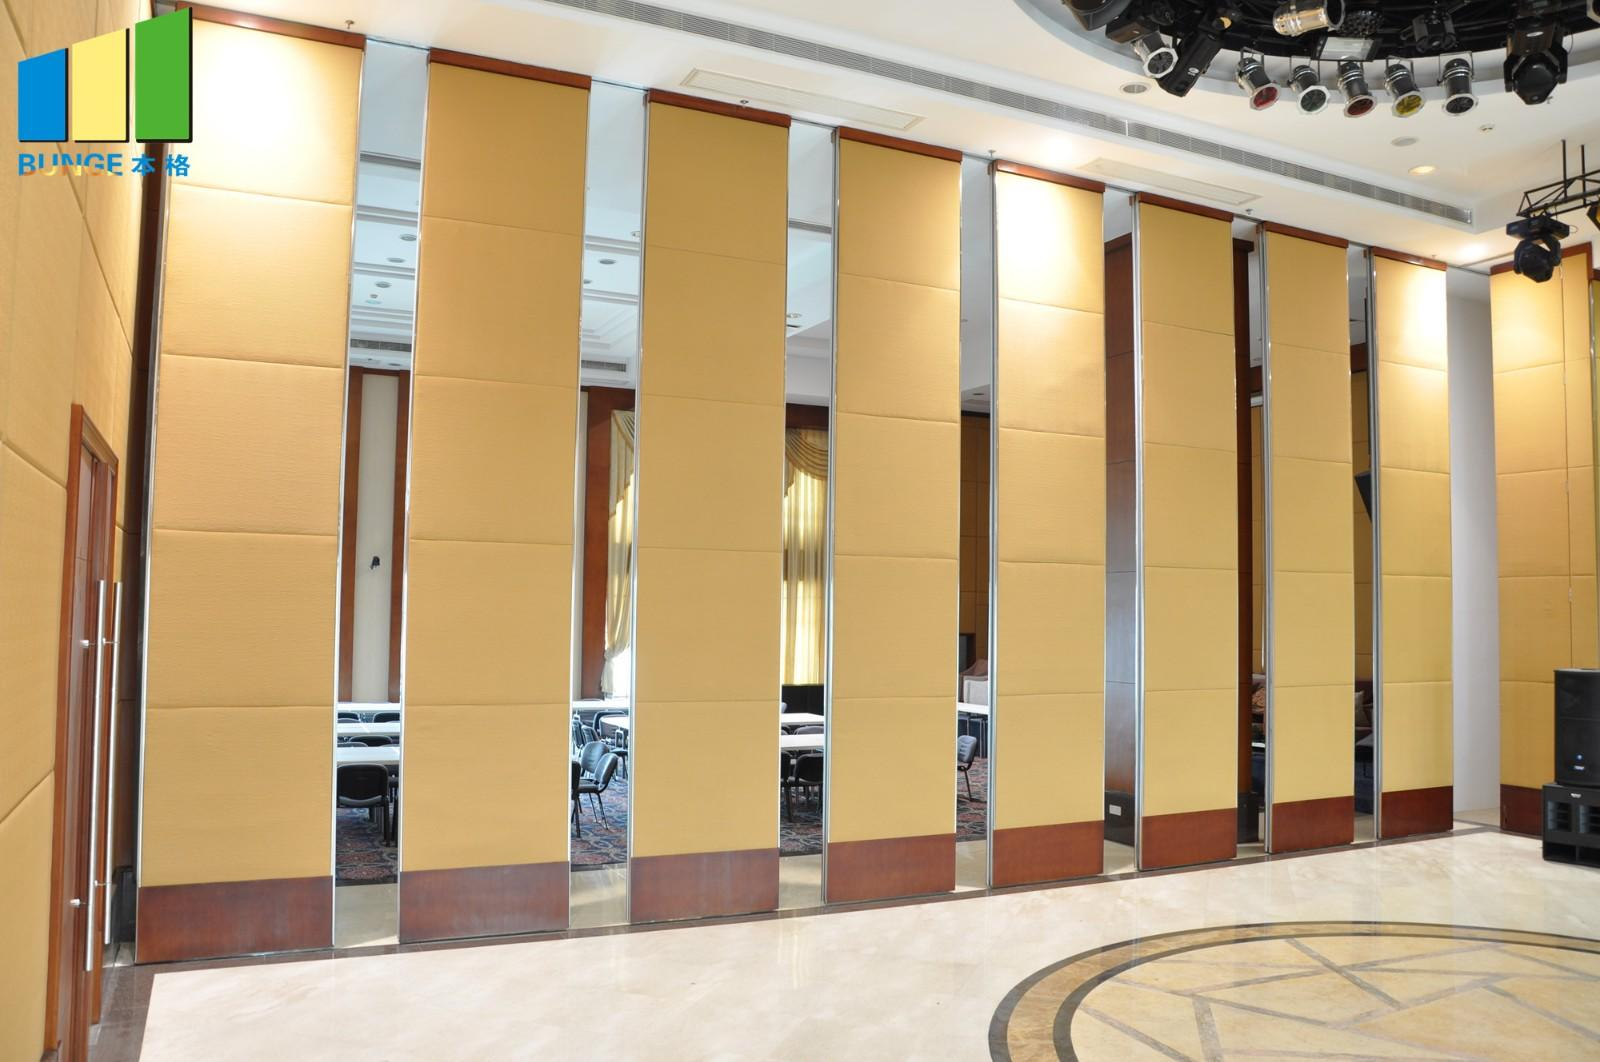 Bunge-Find Hall Partition Designs Moveable Partitions From Bunge Building Decoration-1